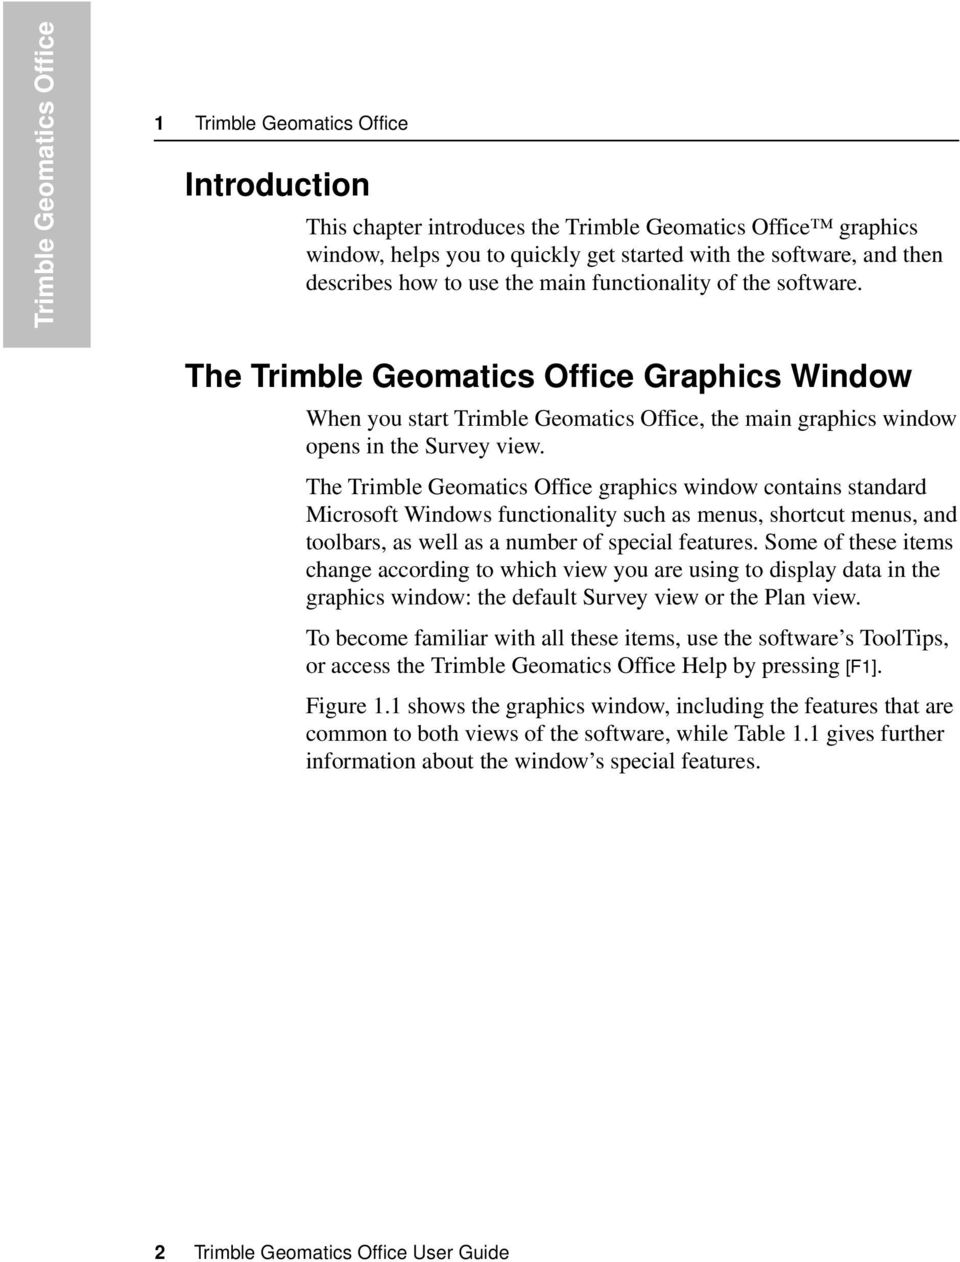 Trimble geomatics office download free